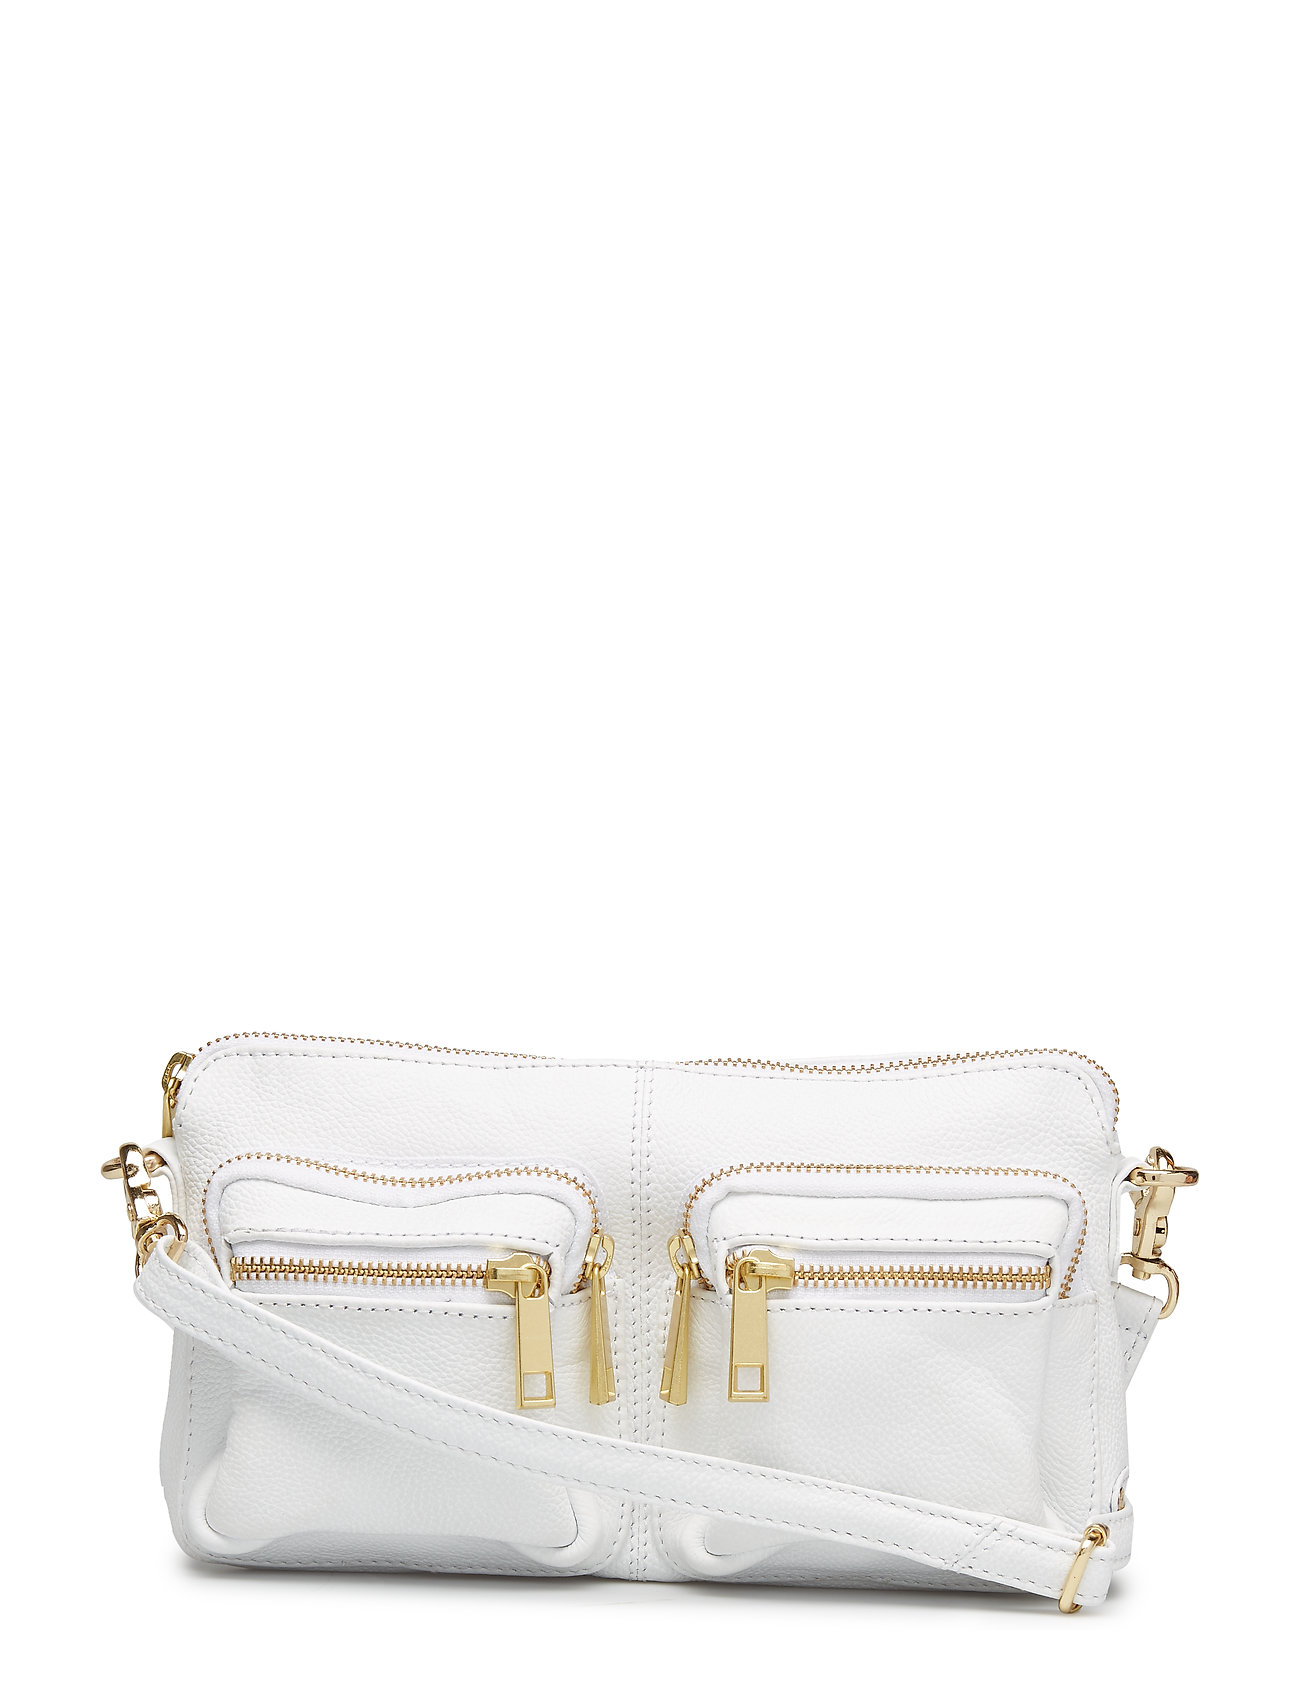 Image of Small Bag / Clutch Bags Small Shoulder Bags/crossbody Bags Hvid DEPECHE (3120753501)